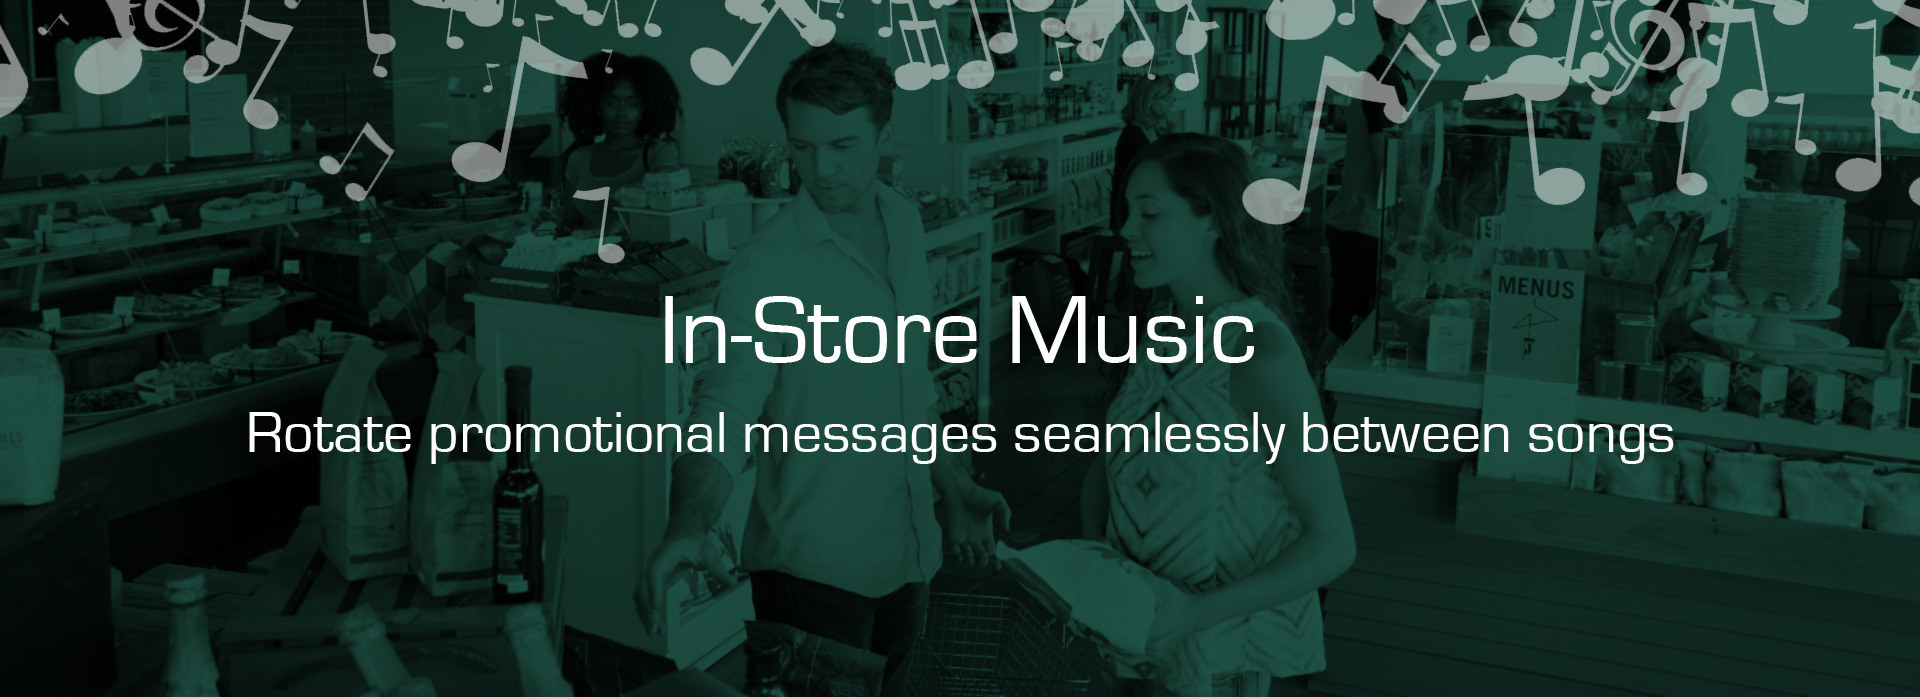 in-store-media-company-in-store-music